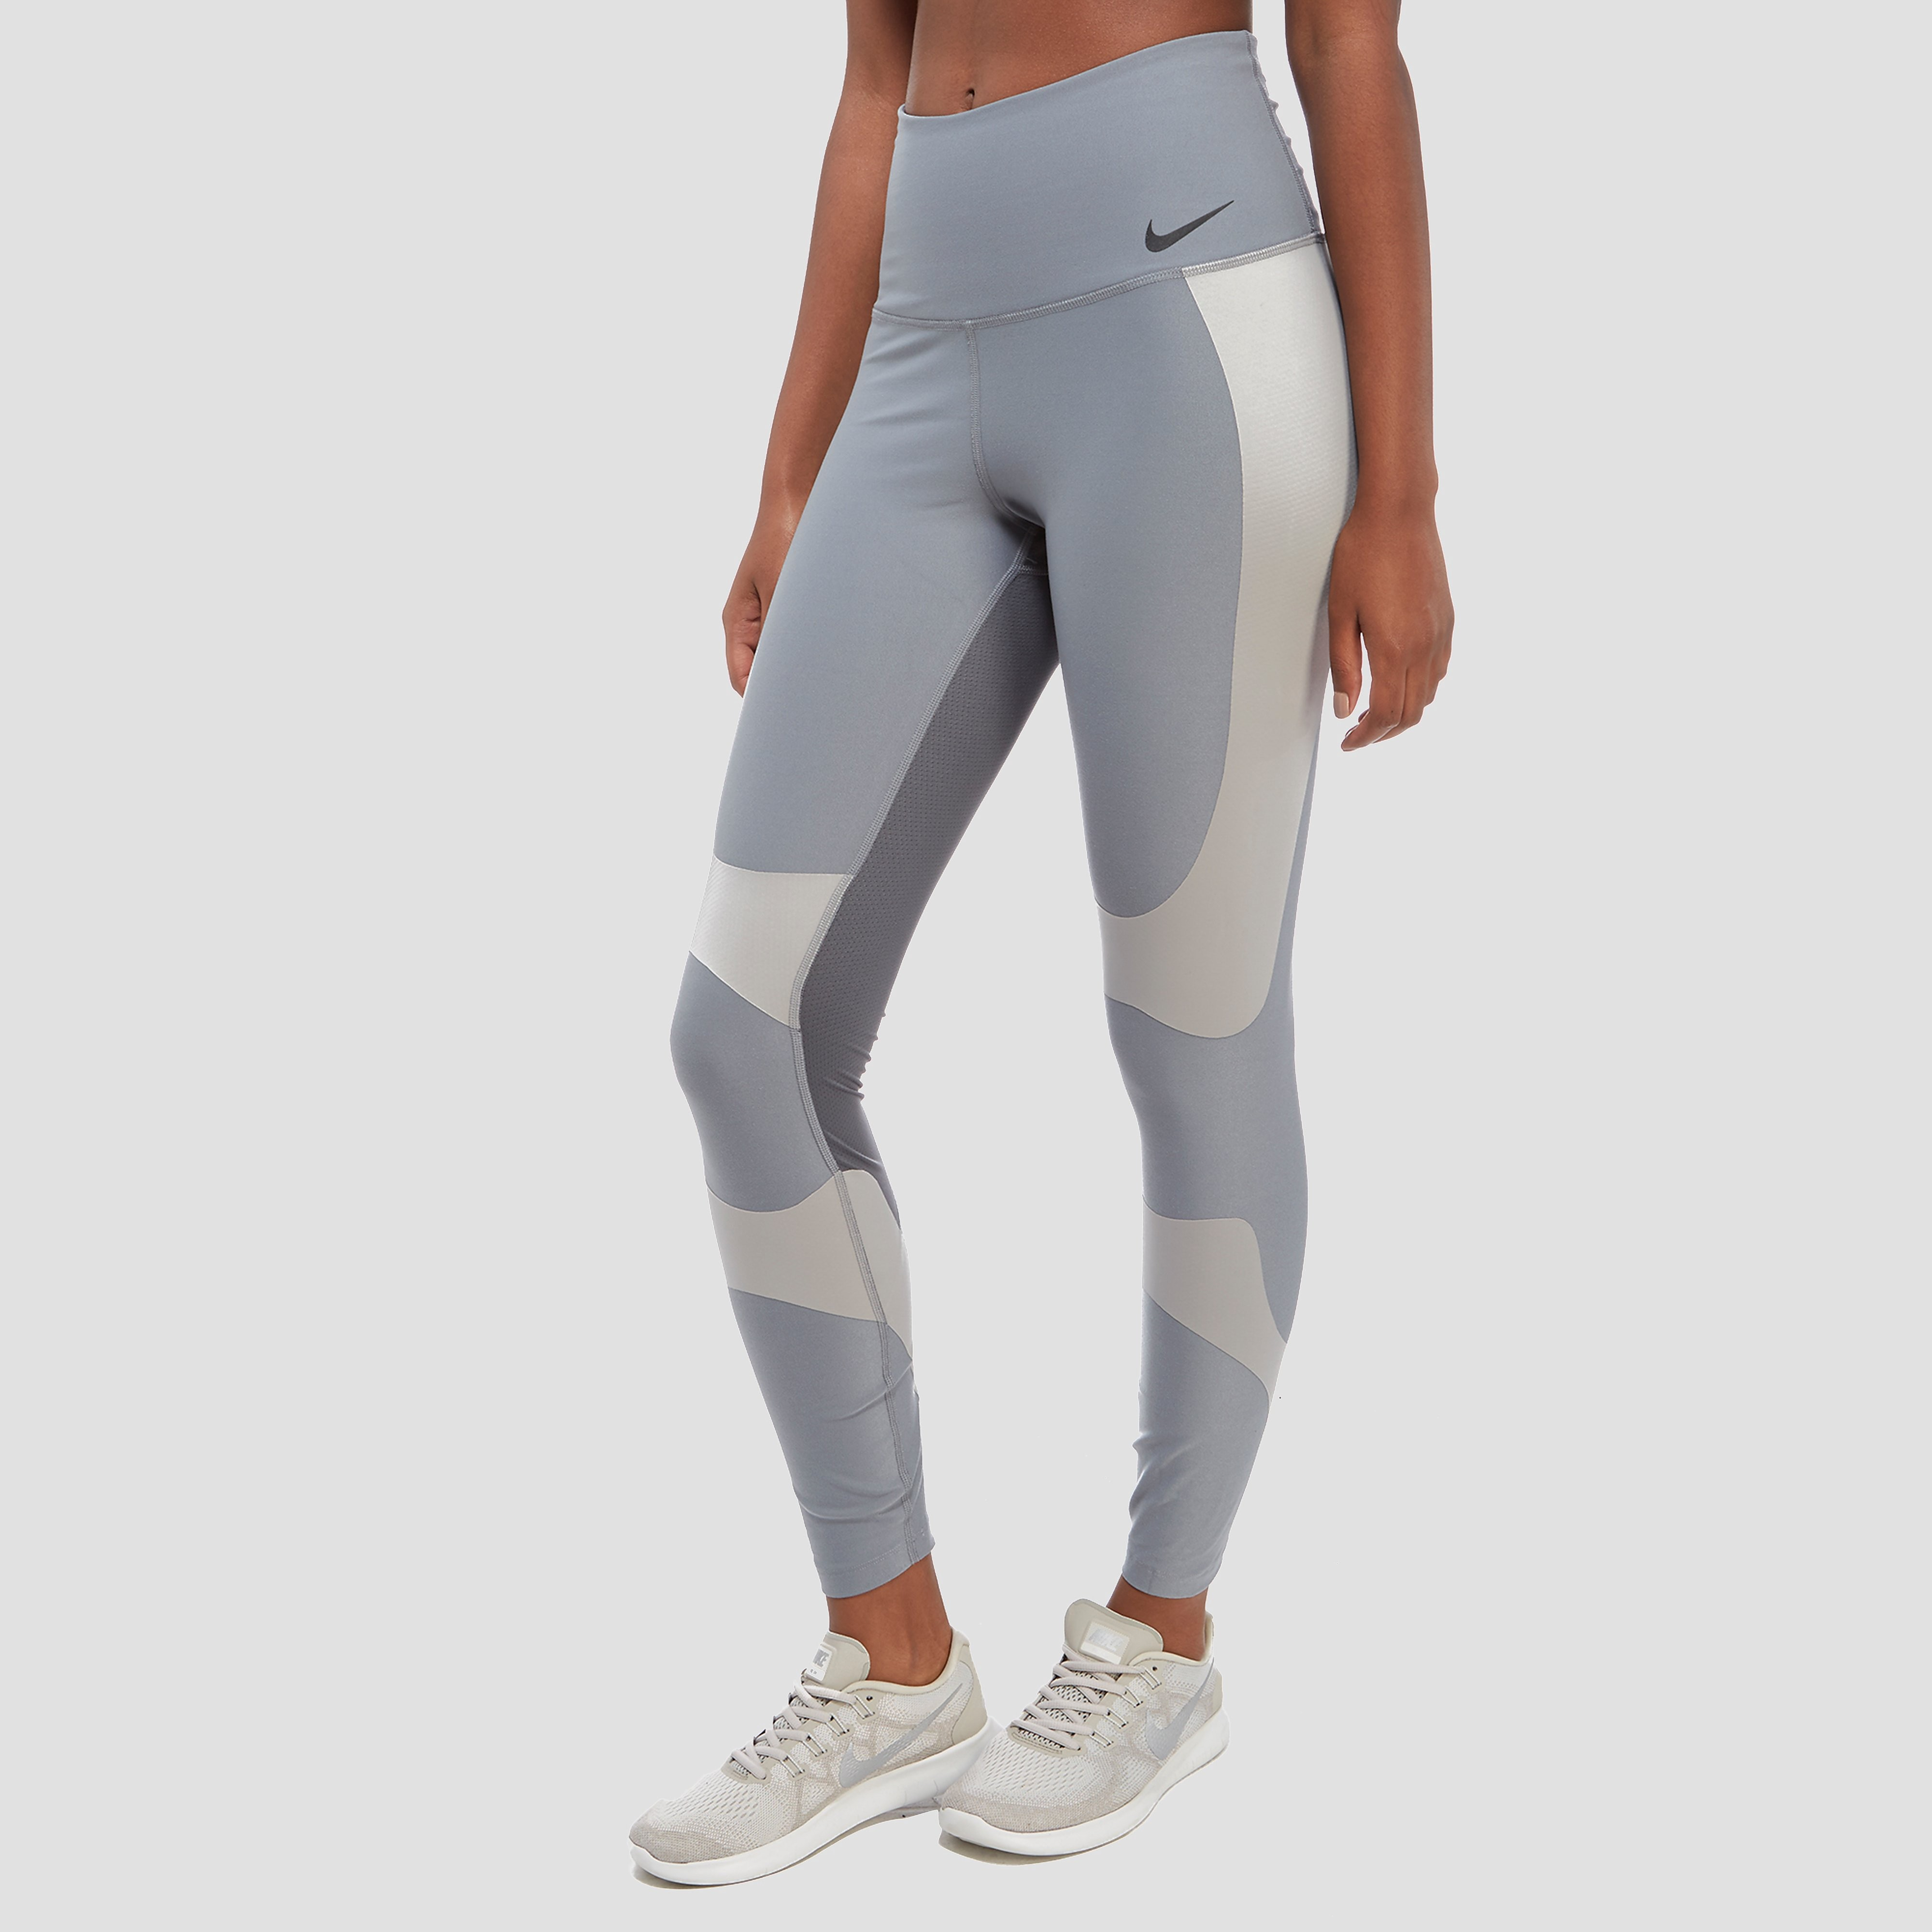 Nike Colour Block Legend Women's Training Tights